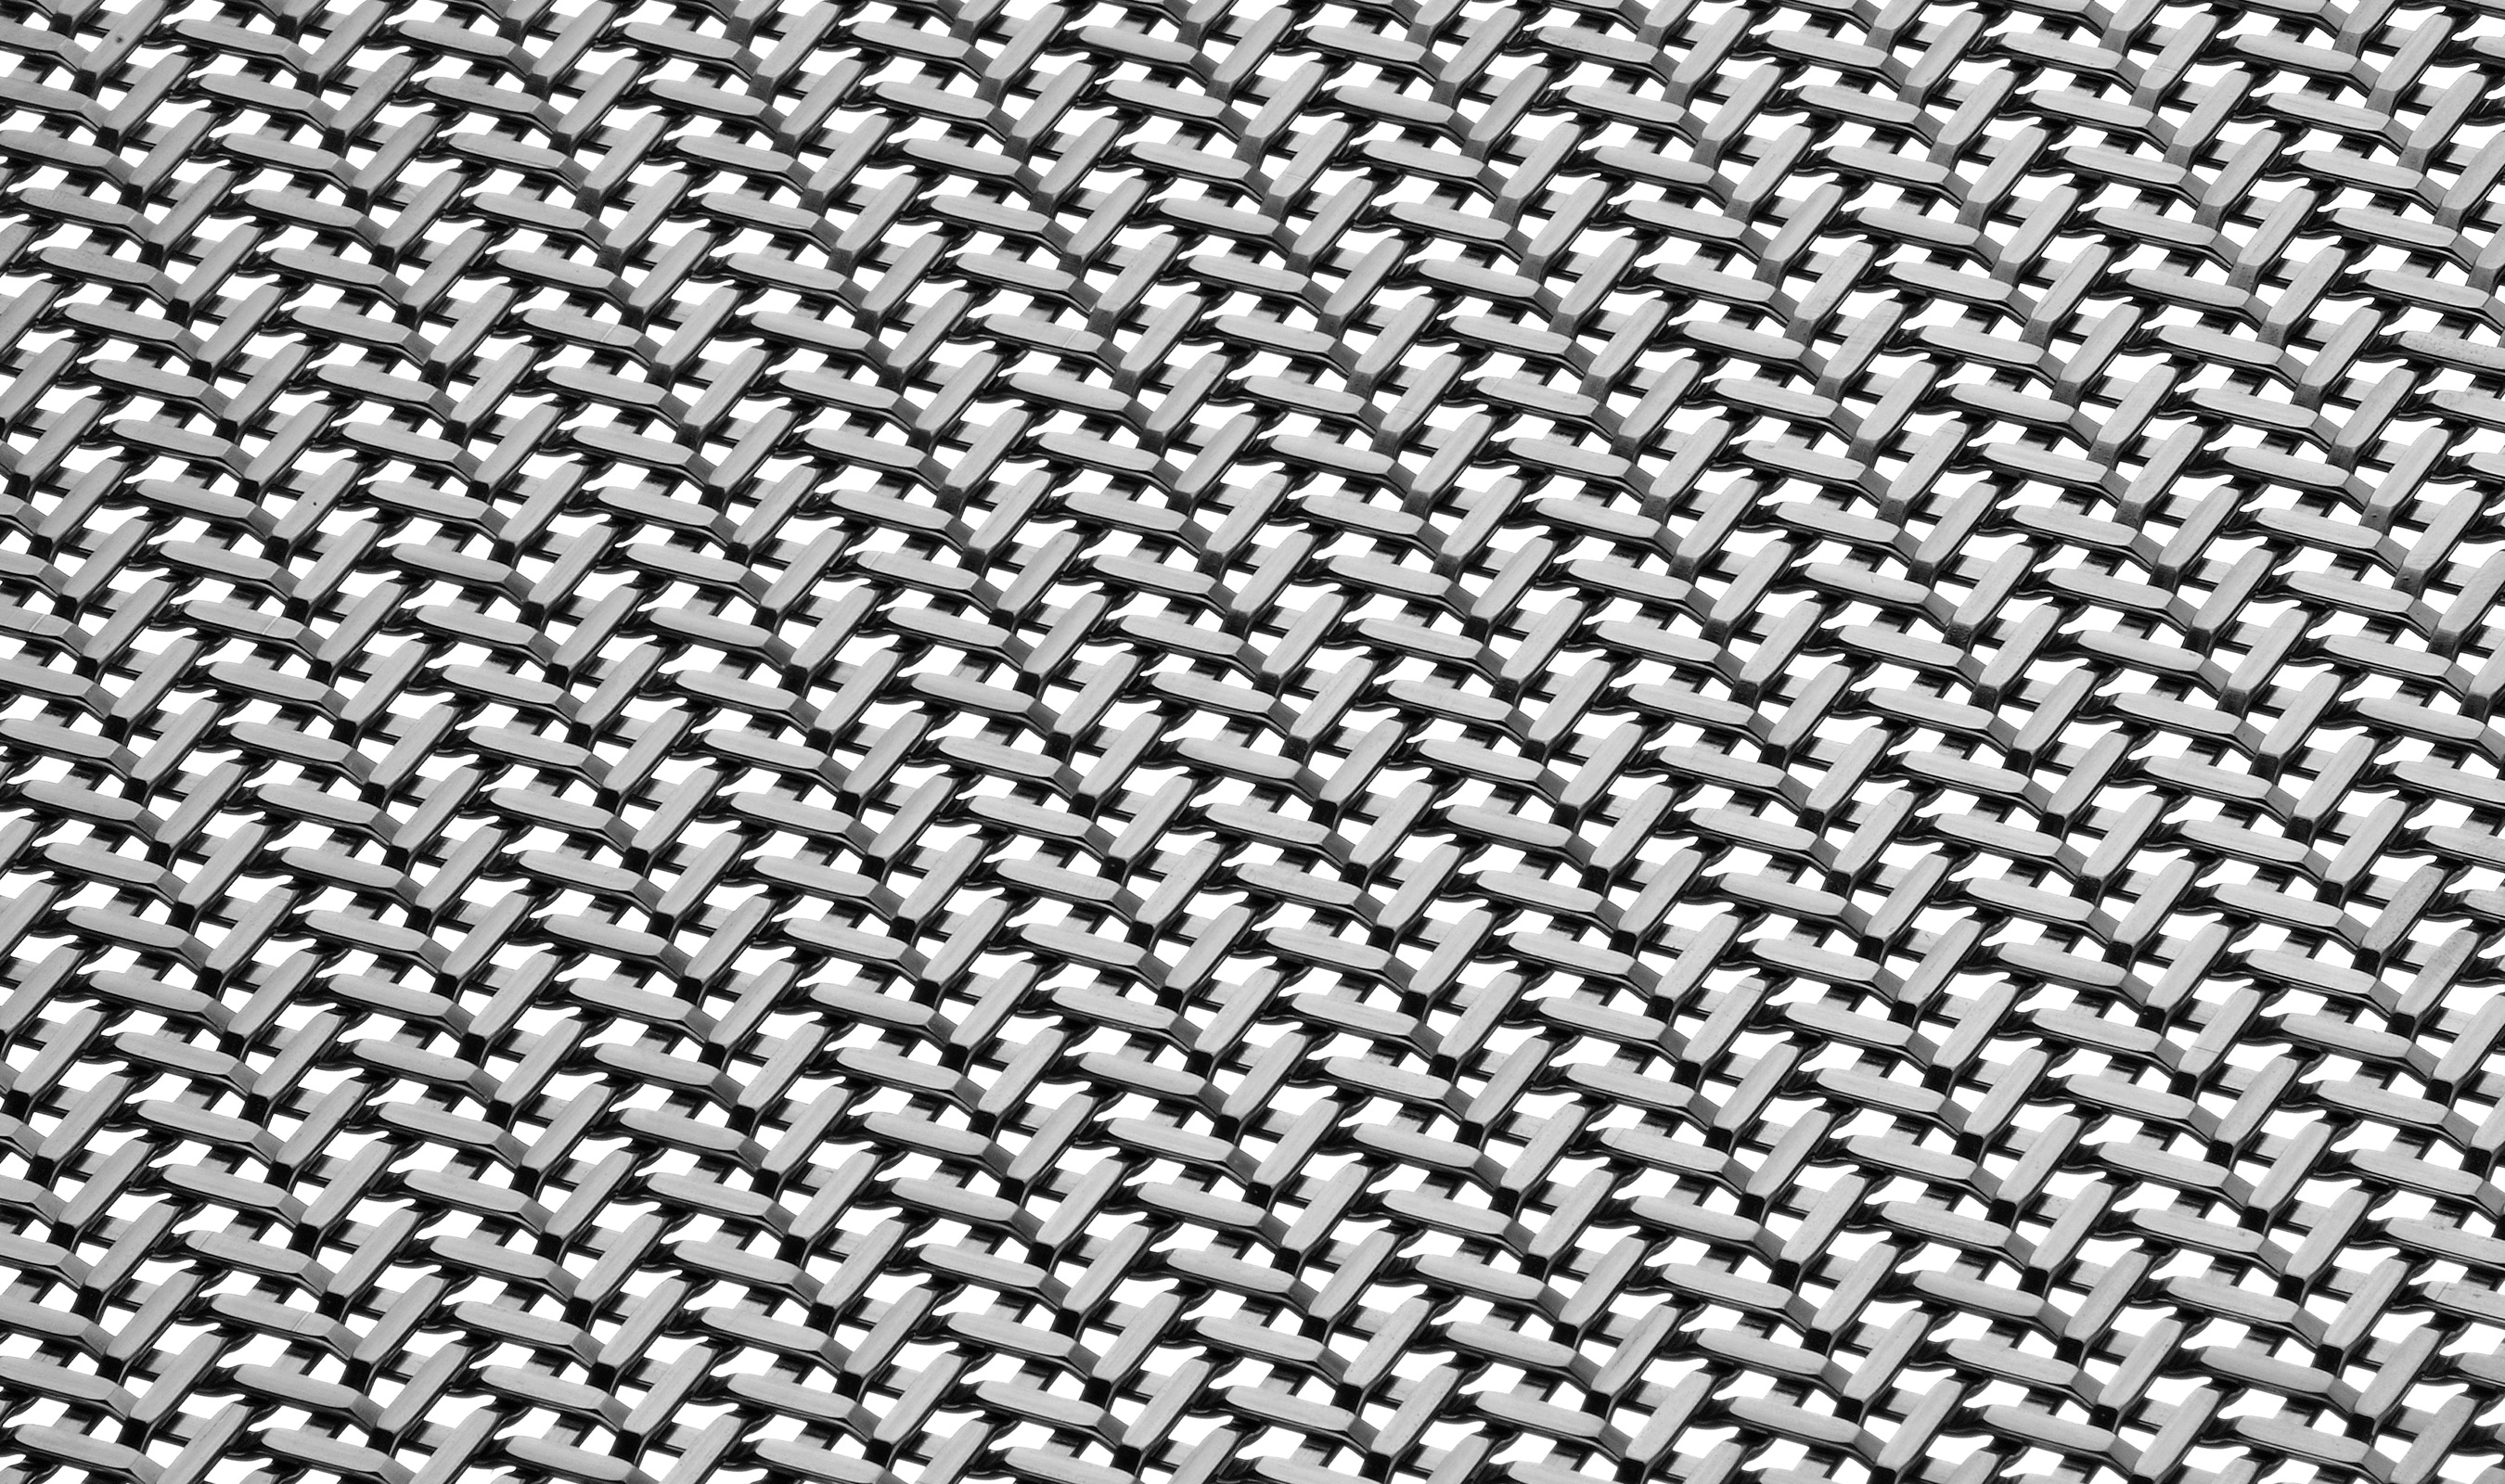 TW-1 Angle in Stainless Woven Wire Mesh